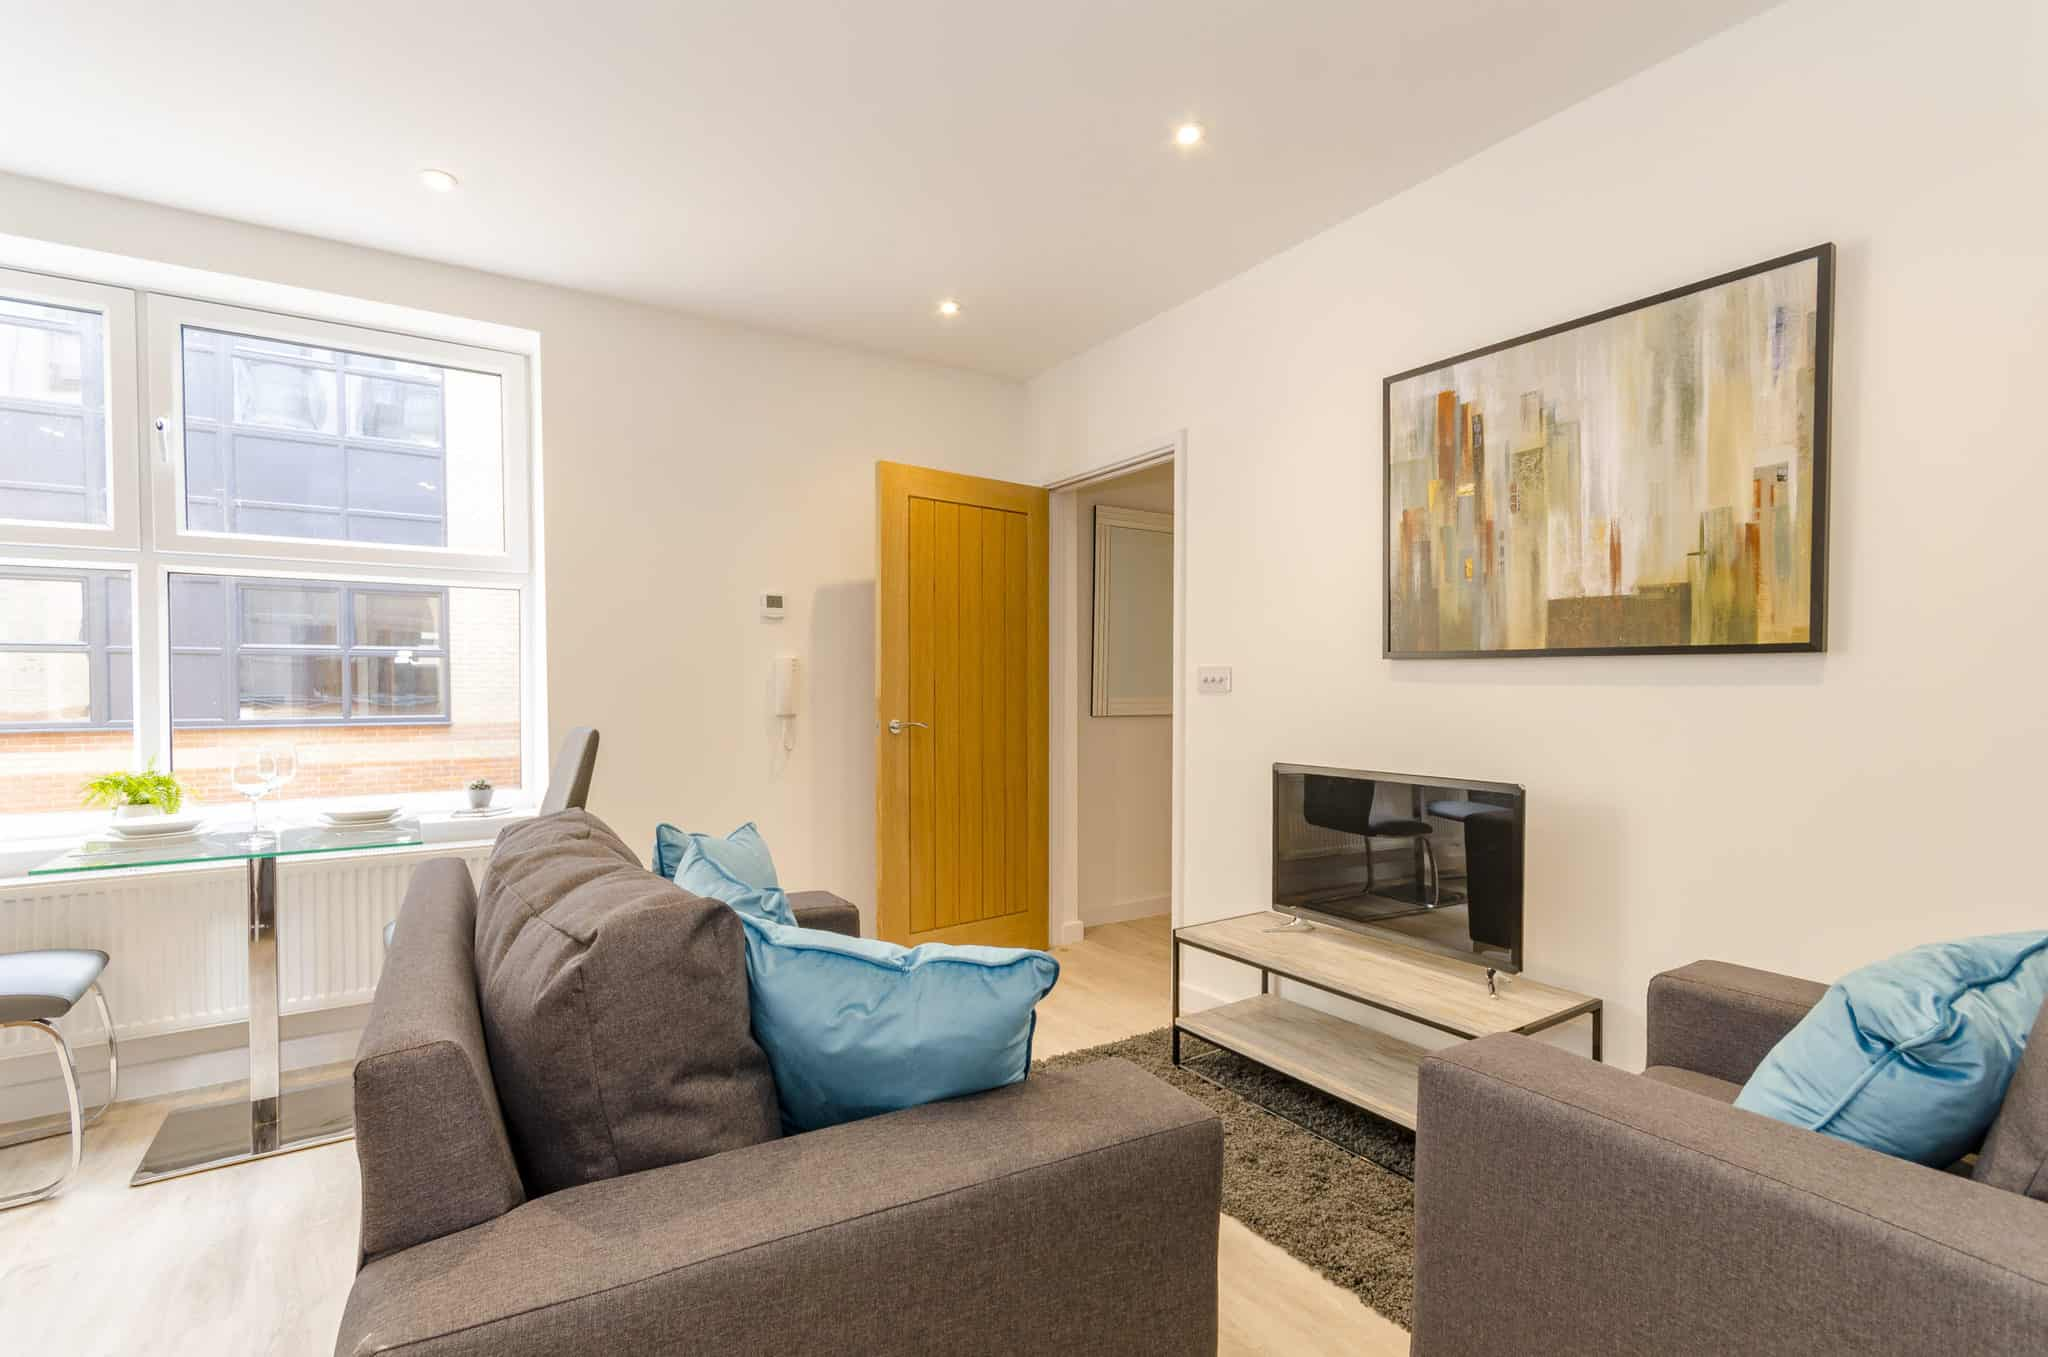 Saxon Gate Southampton Interior: Commercial to Residential Property Conversion Apartment